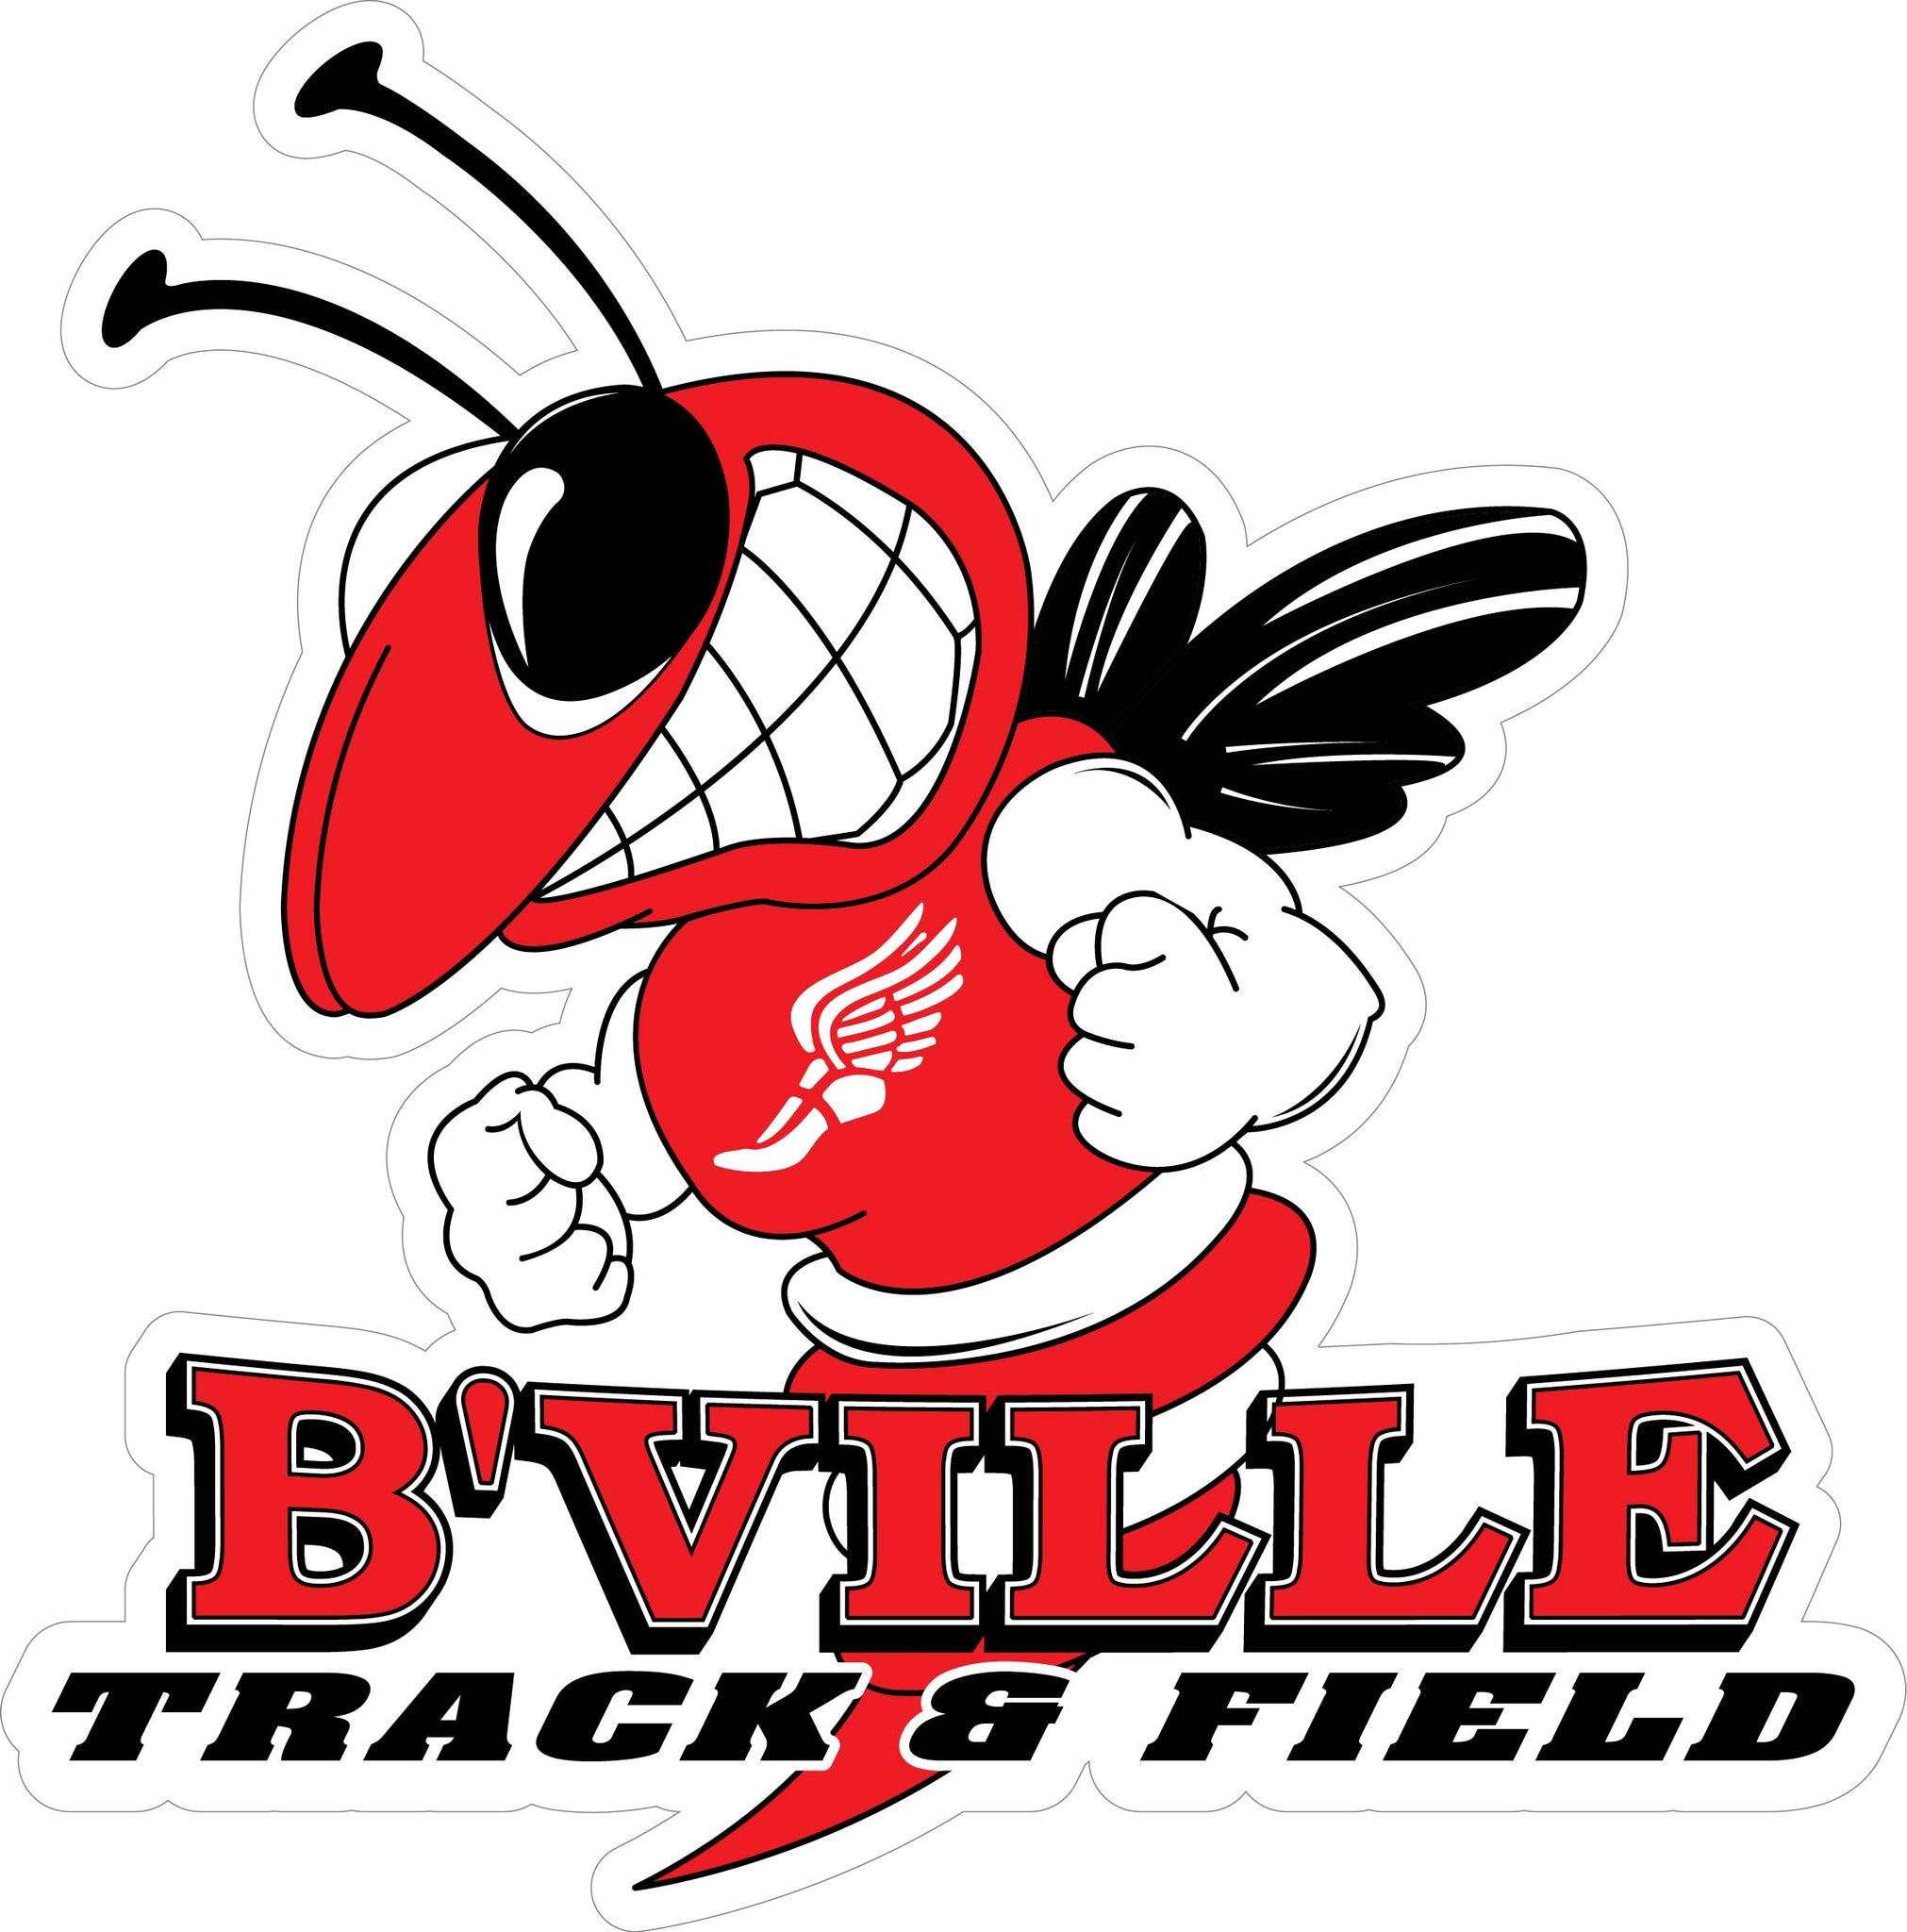 """B'VILLE Track & Field"" Decal"